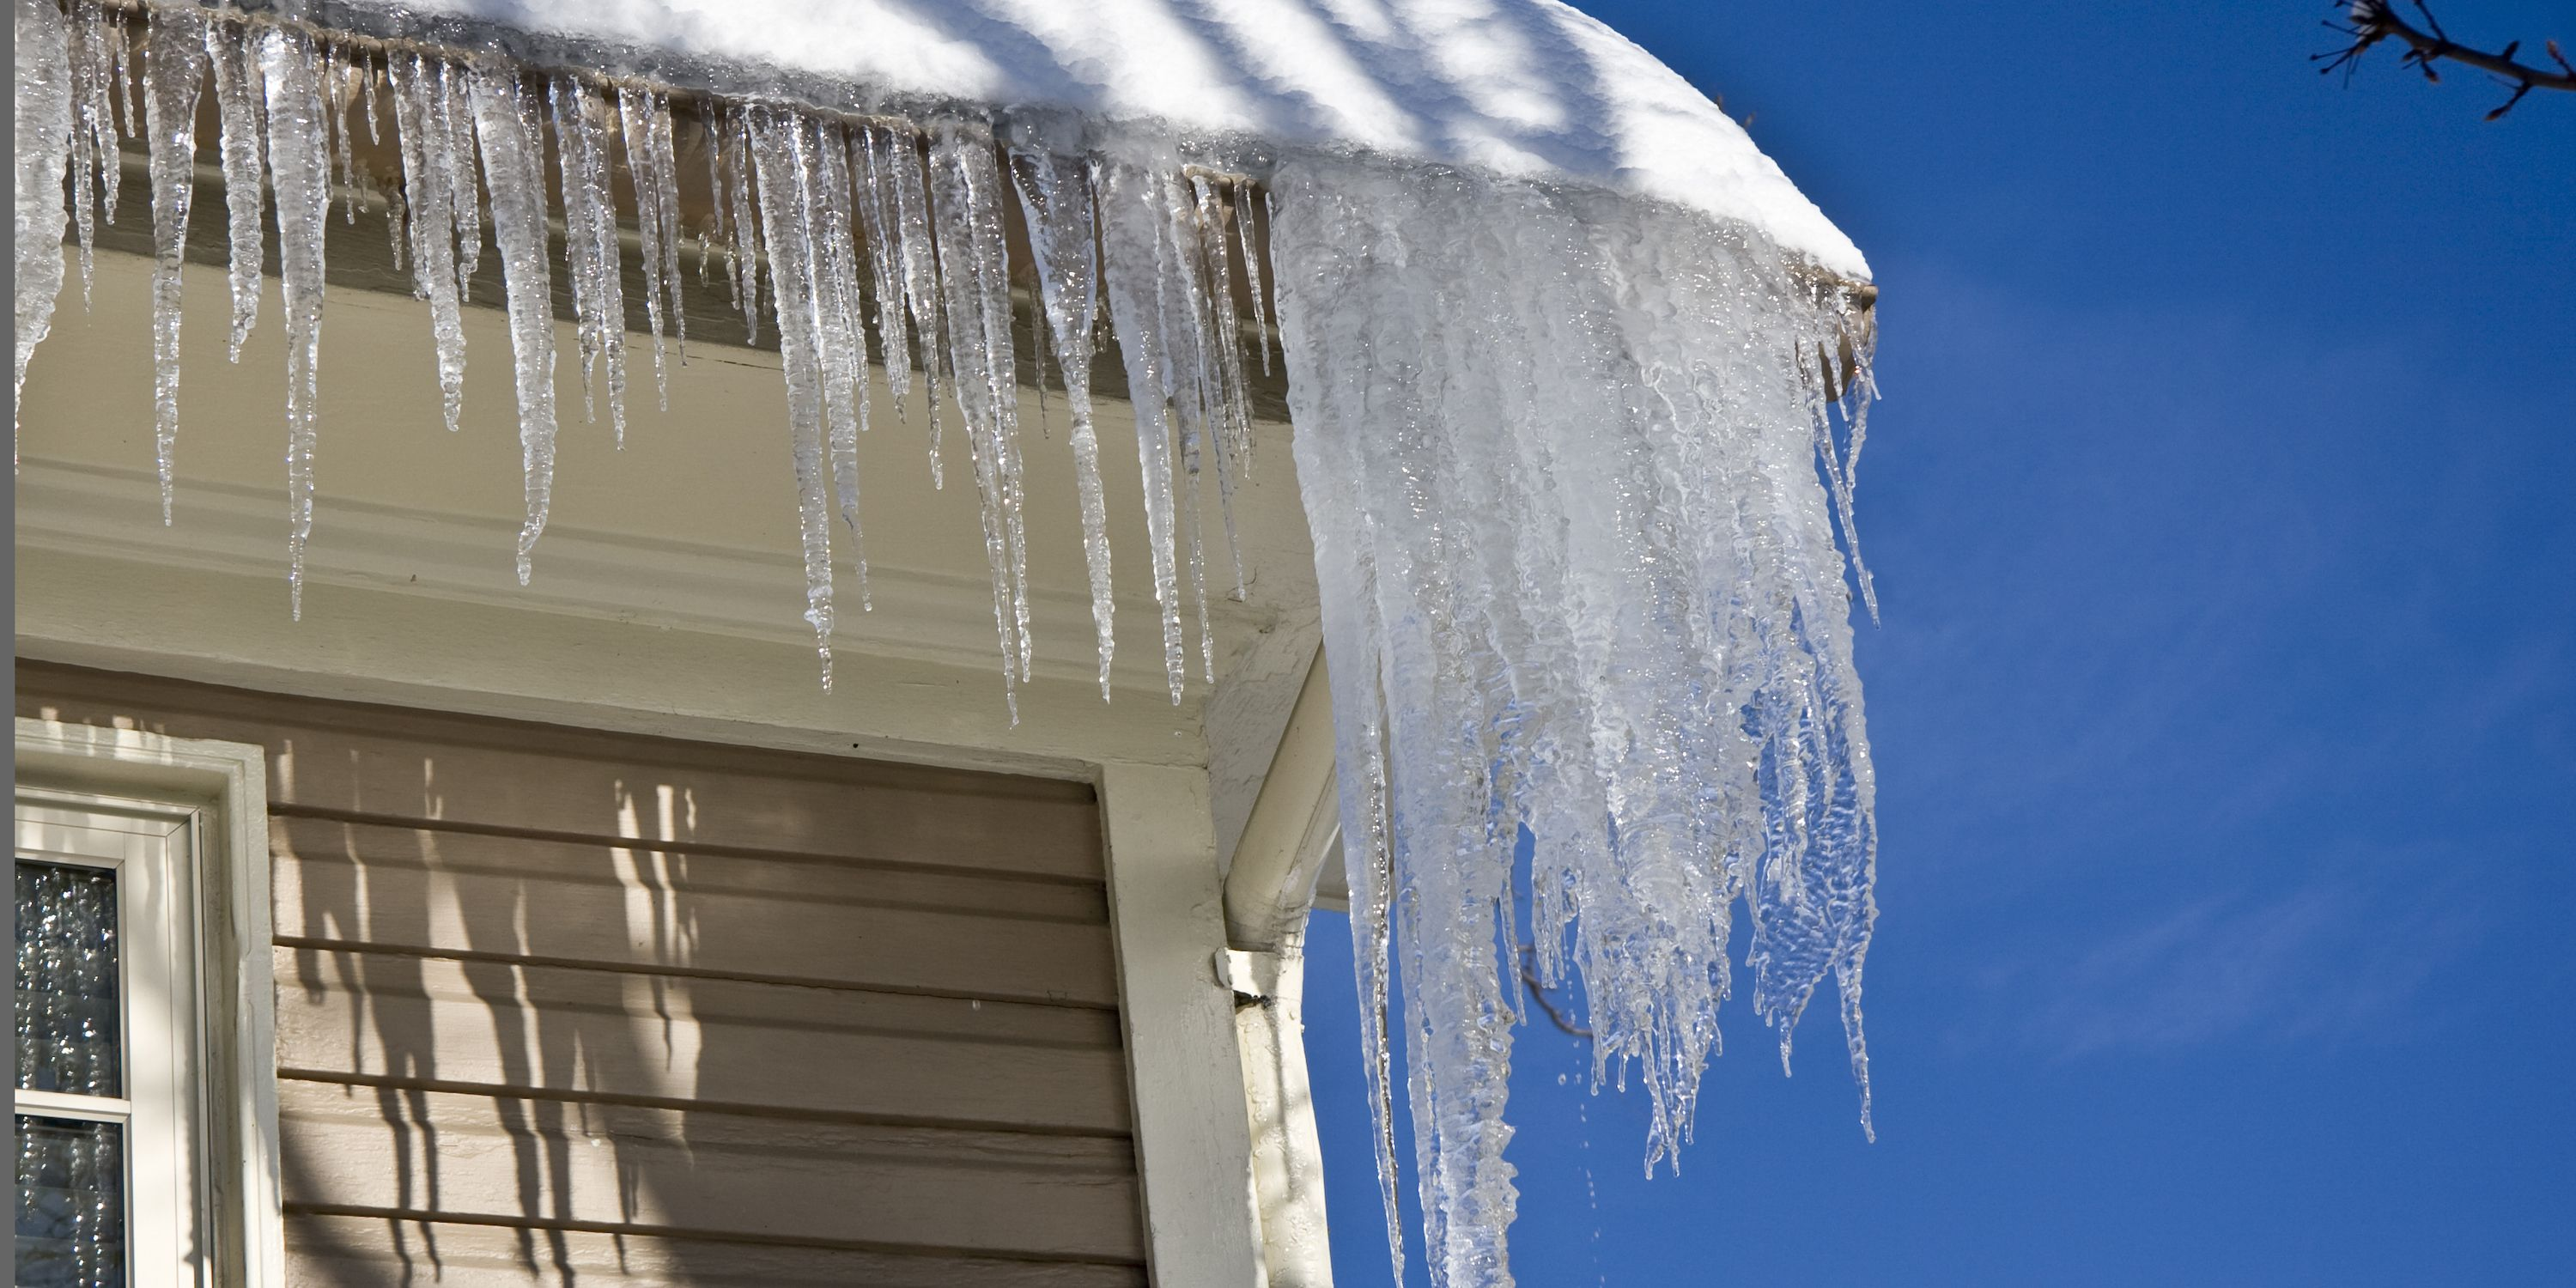 ... Water In Basement During Winter How To Winter Proof Your Home U2013  Ways Winter Damages Houses ...